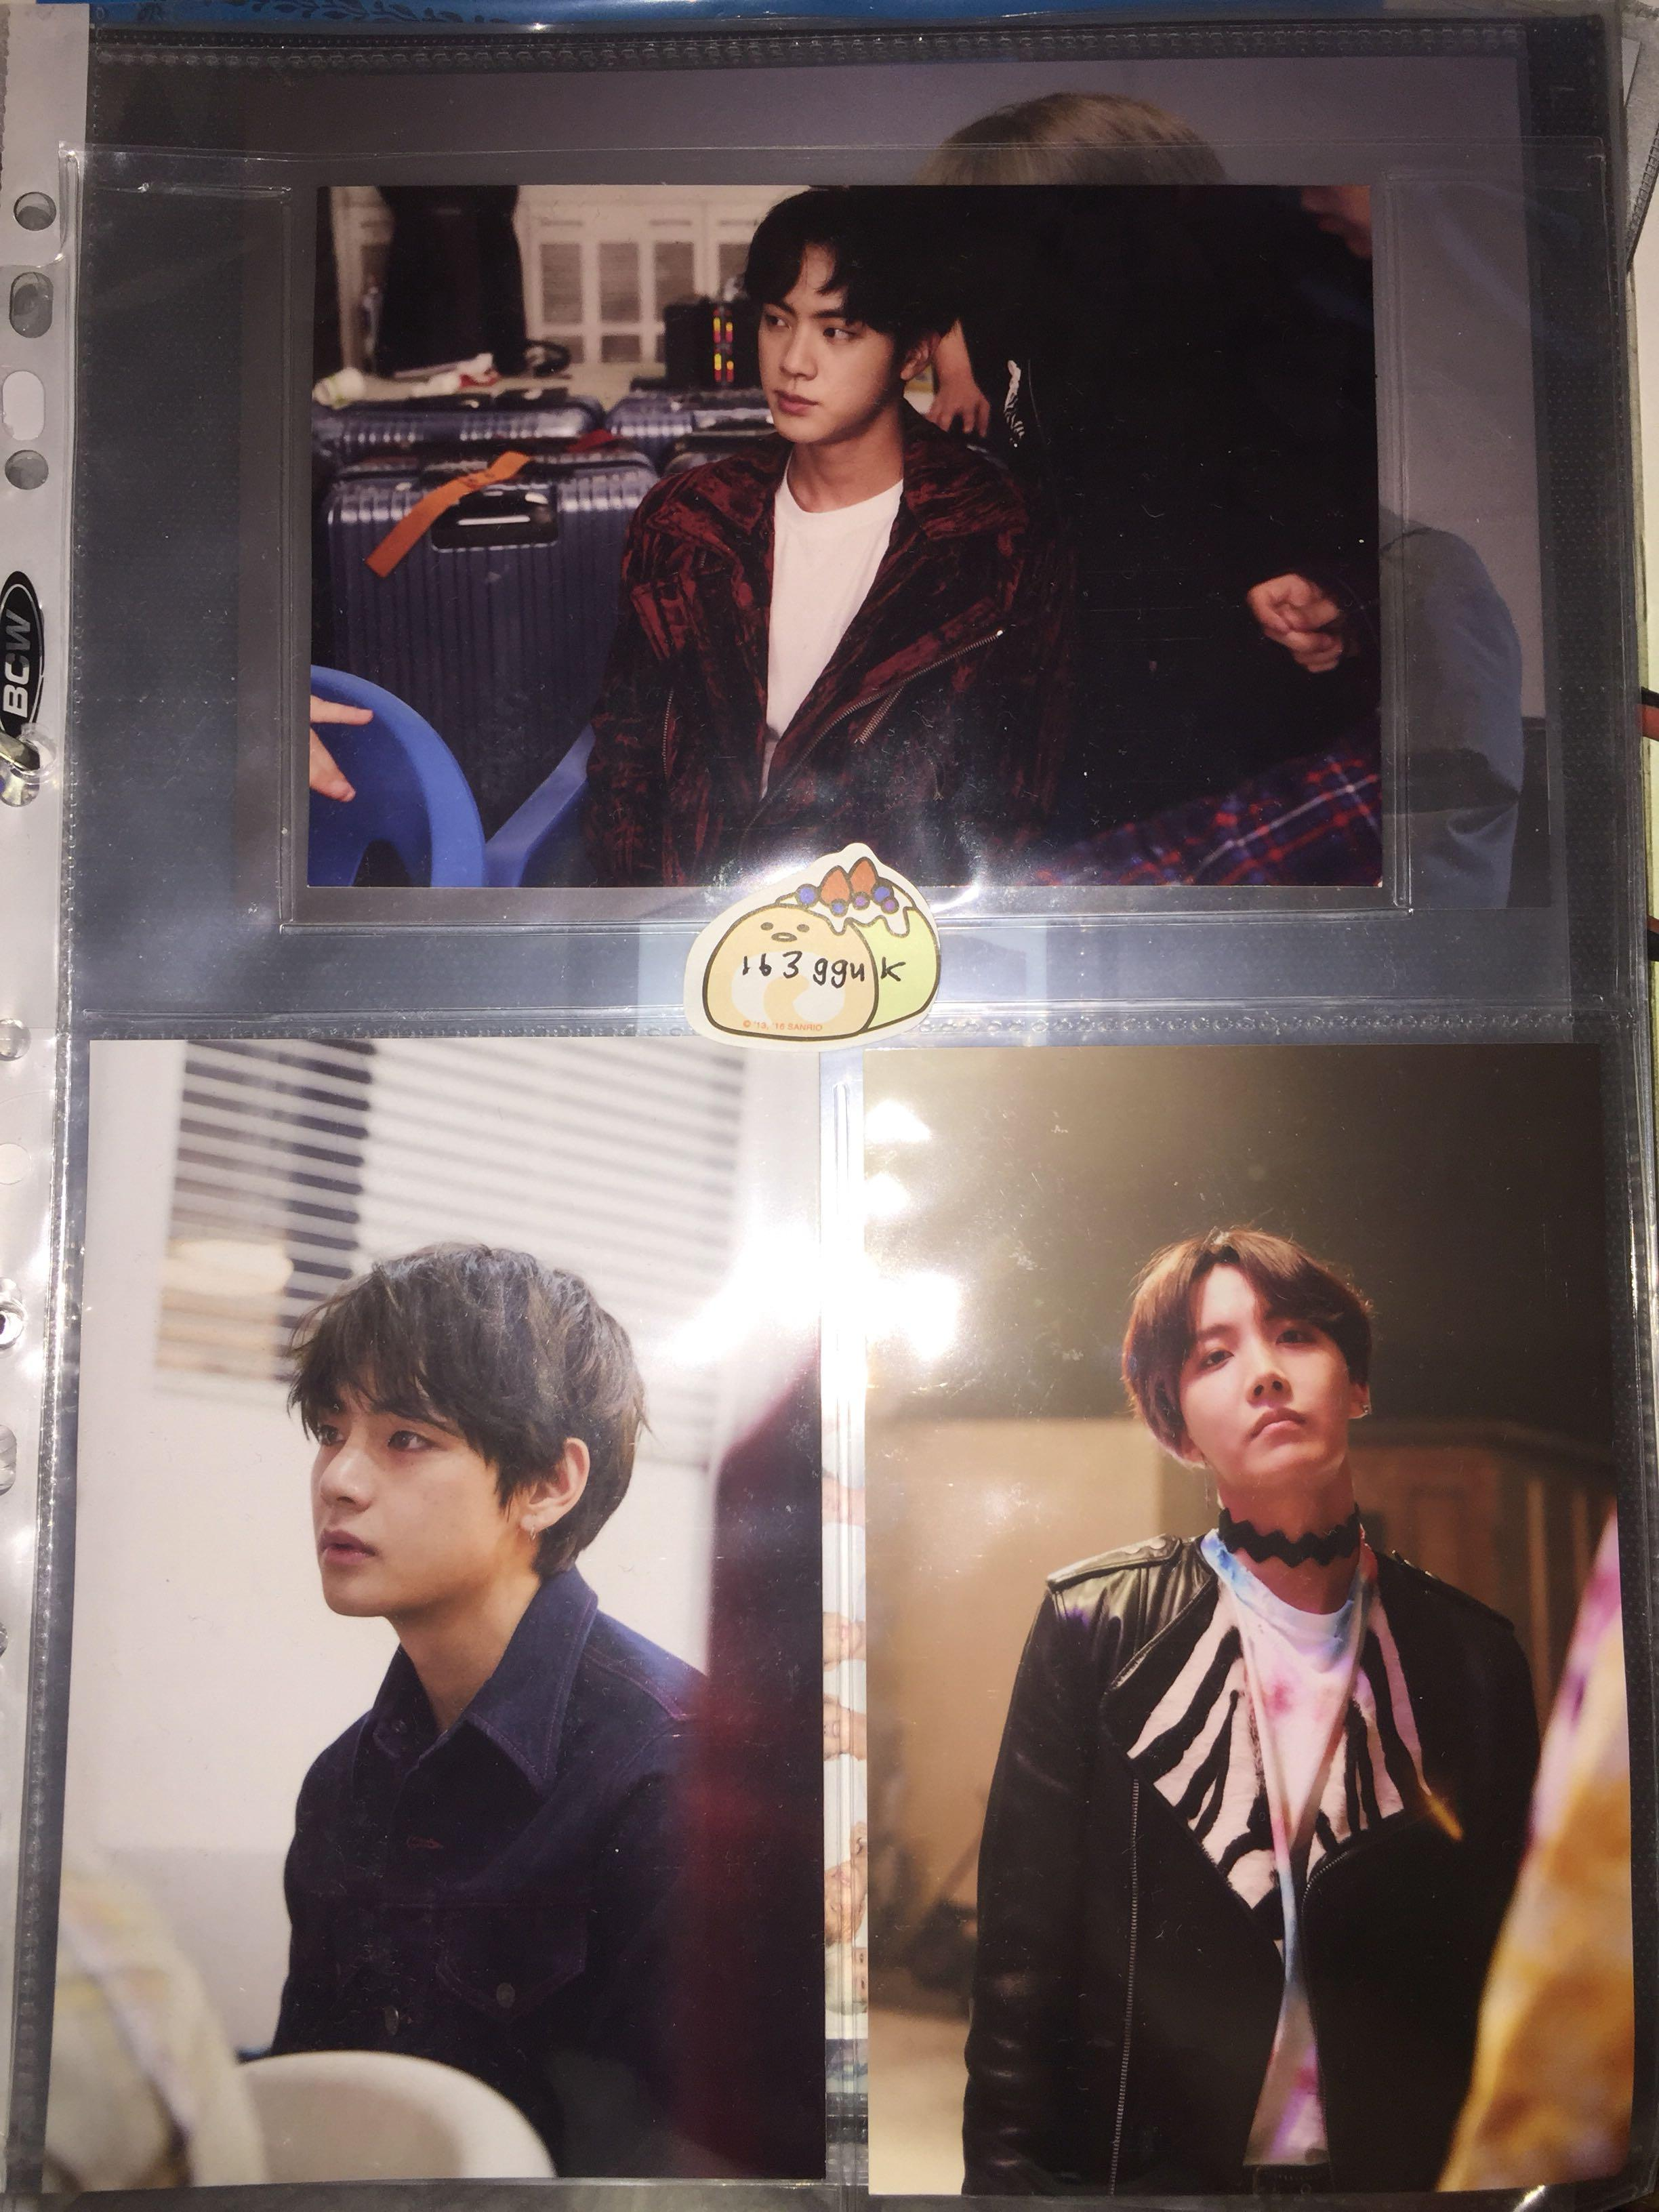 bts oneul exhibition live photos / photocard / pc ( tae, jin, hobi )